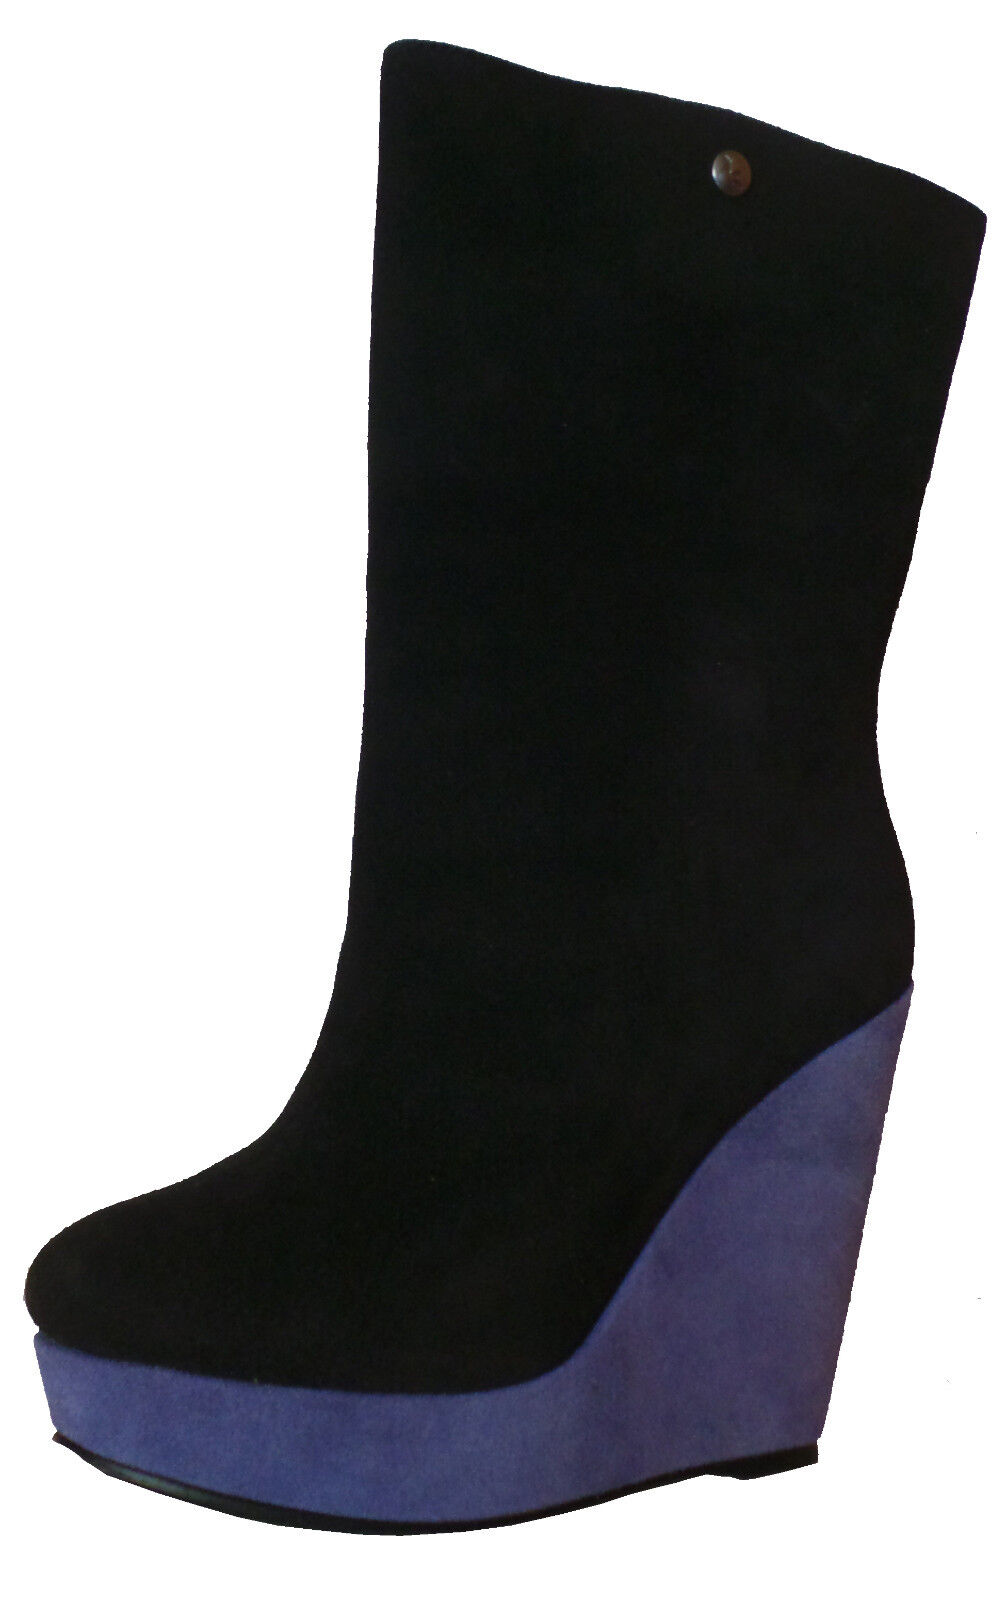 KOOLABURRA KOOLABURRA KOOLABURRA MILA Ladies  Suede Ankle Boots Black-bluee NEW 2aebe2